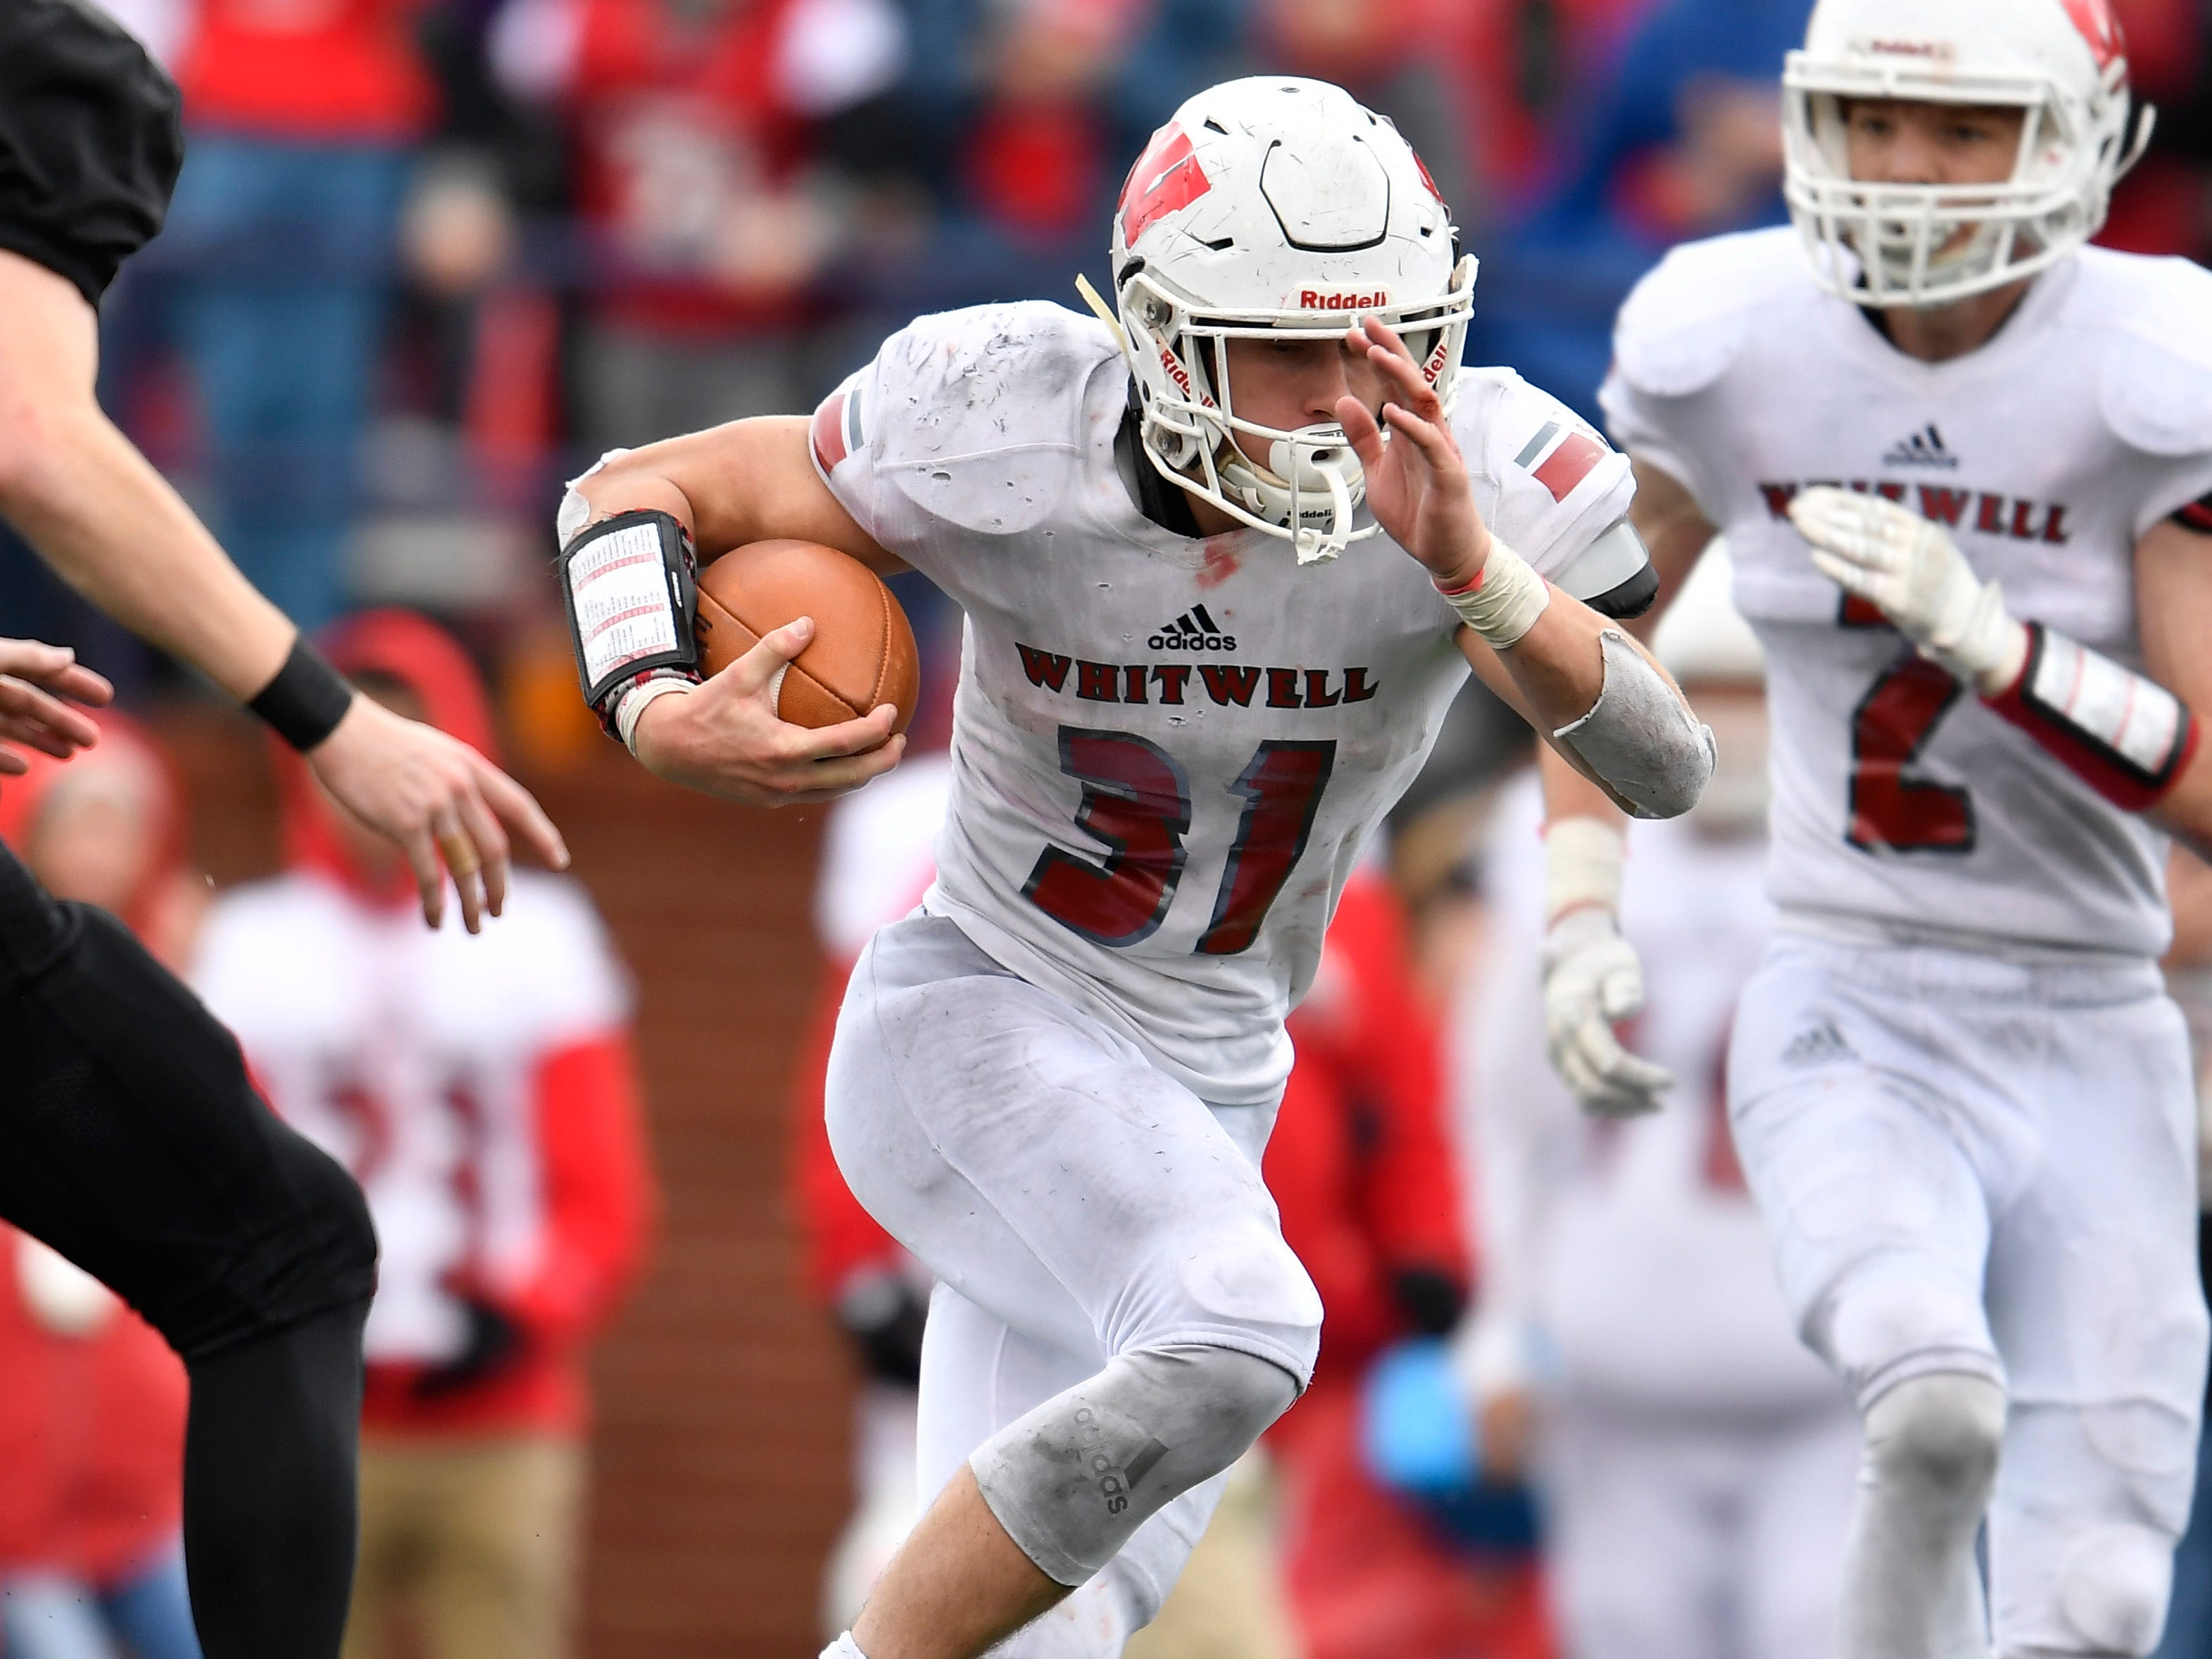 Whitwell running back Hudson Petty (31) races up the field in the third at the Class I-A BlueCross Bowl state championship at Tennessee Tech's Tucker Stadium in Cookeville, Tenn., on Saturday, Dec. 1, 2018.